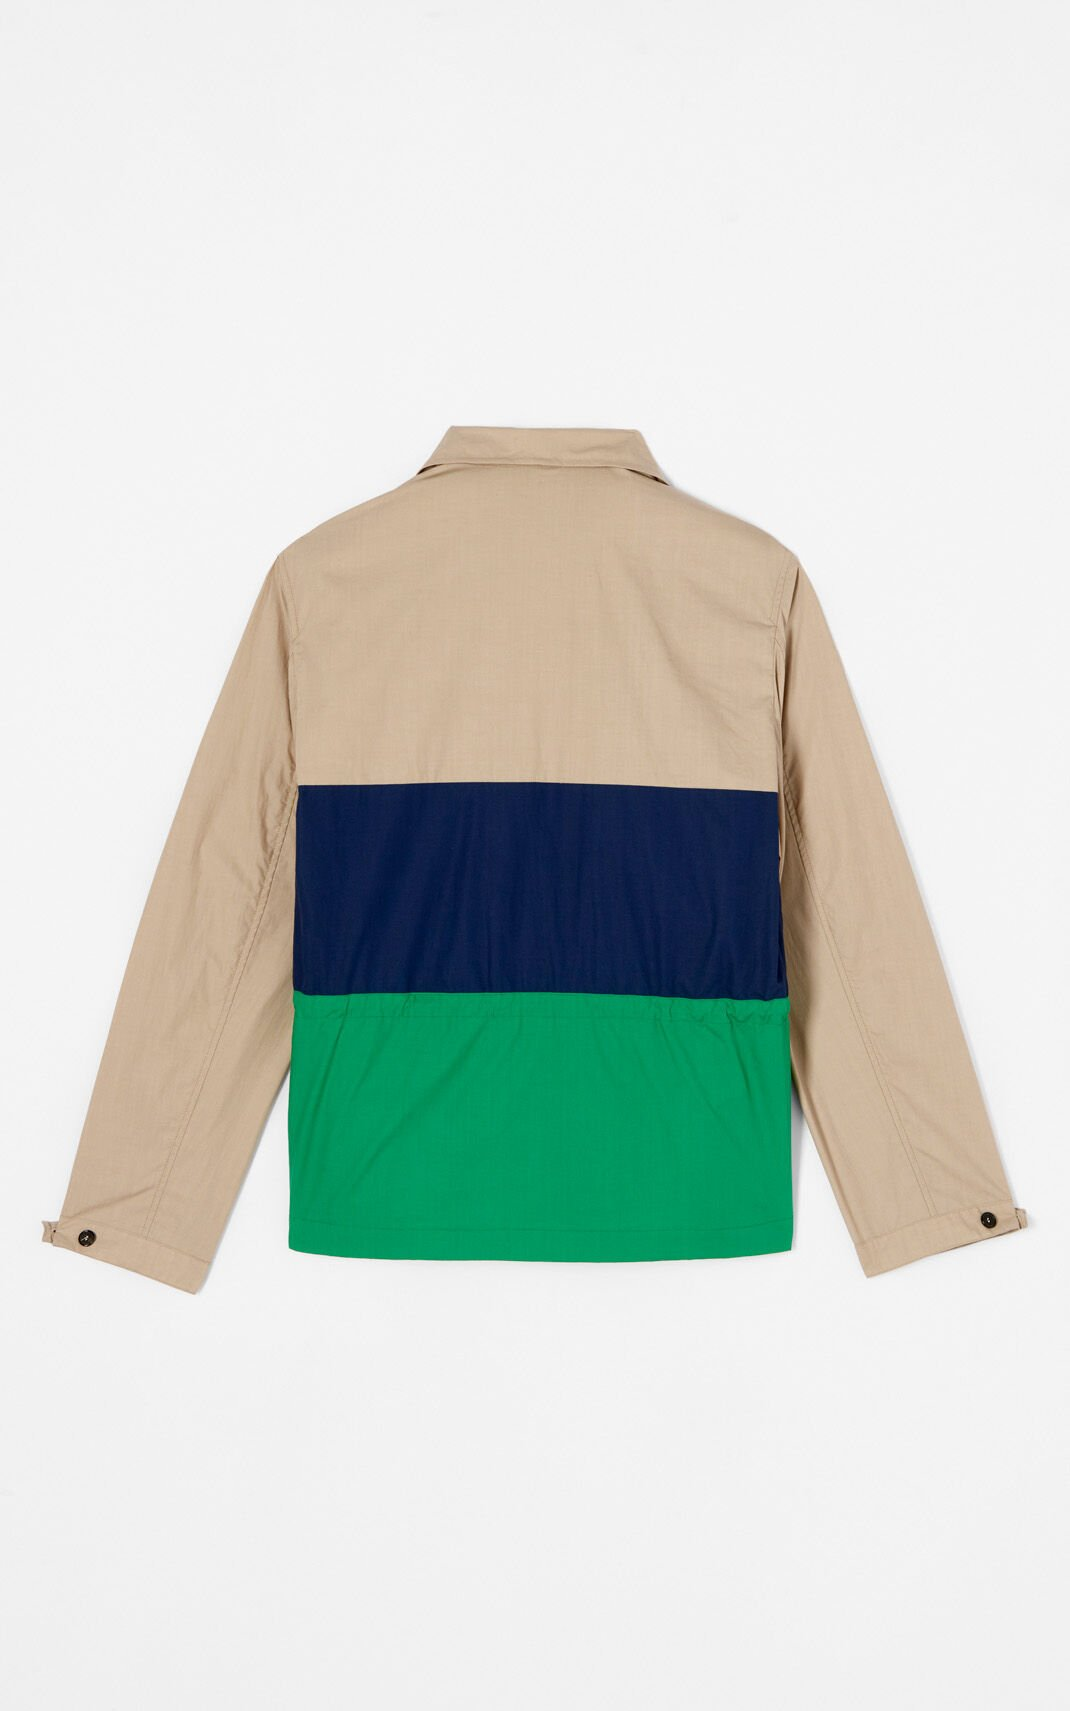 PALE CAMEL 'Hyper KENZO' colourblock jacket for men